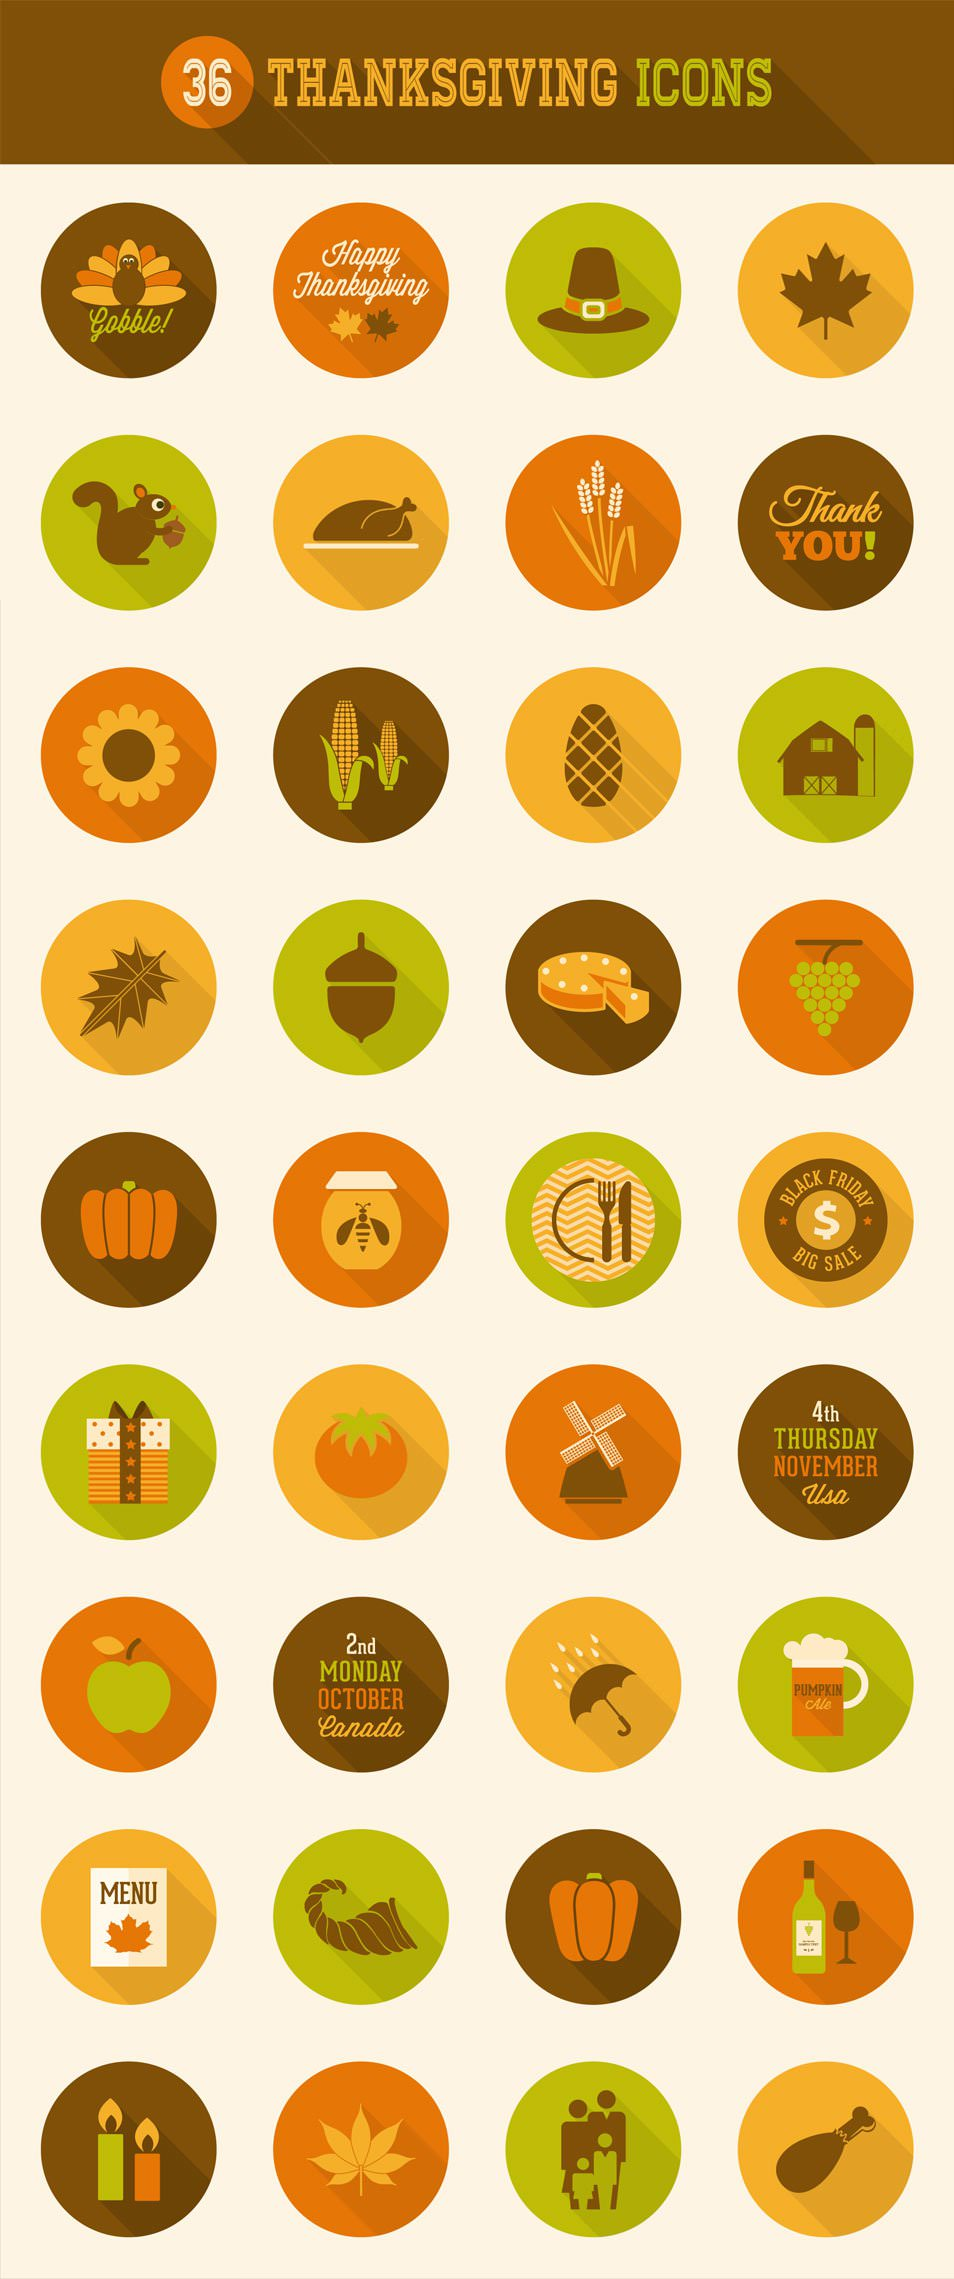 Download 36 Long Shadow Rounded Thanks Giving Icons